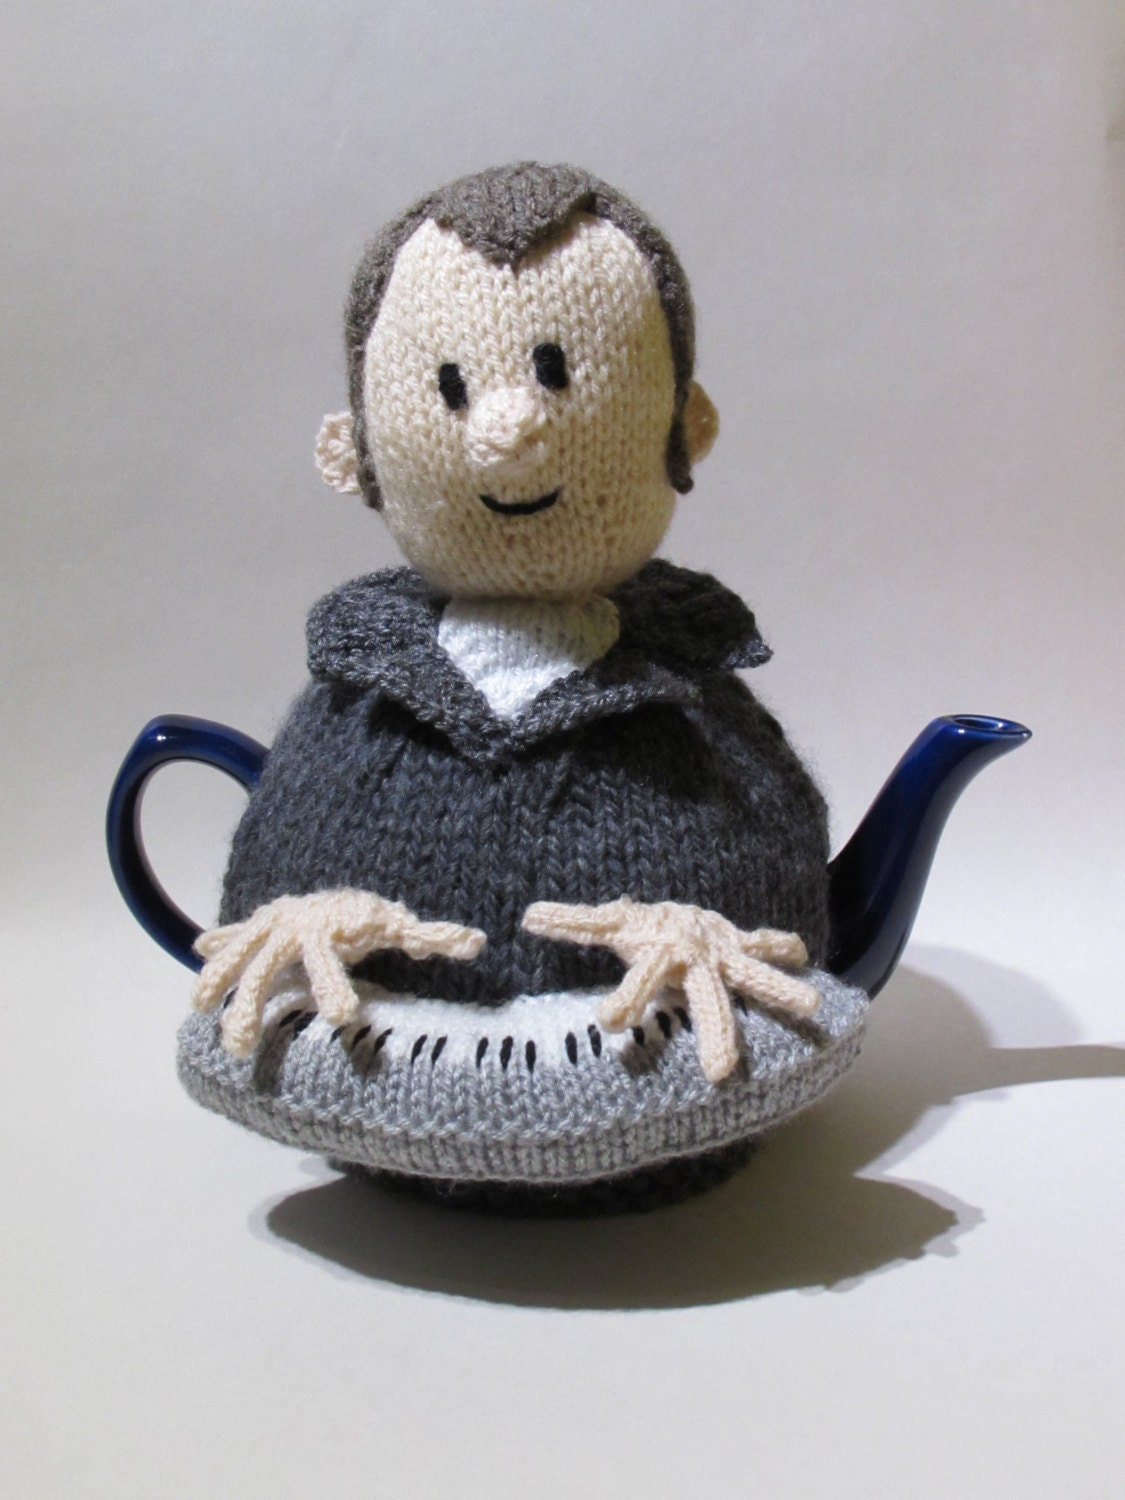 Music Man Tea Cosy Knitting Pattern from TeaCosyFolk on Etsy Studio